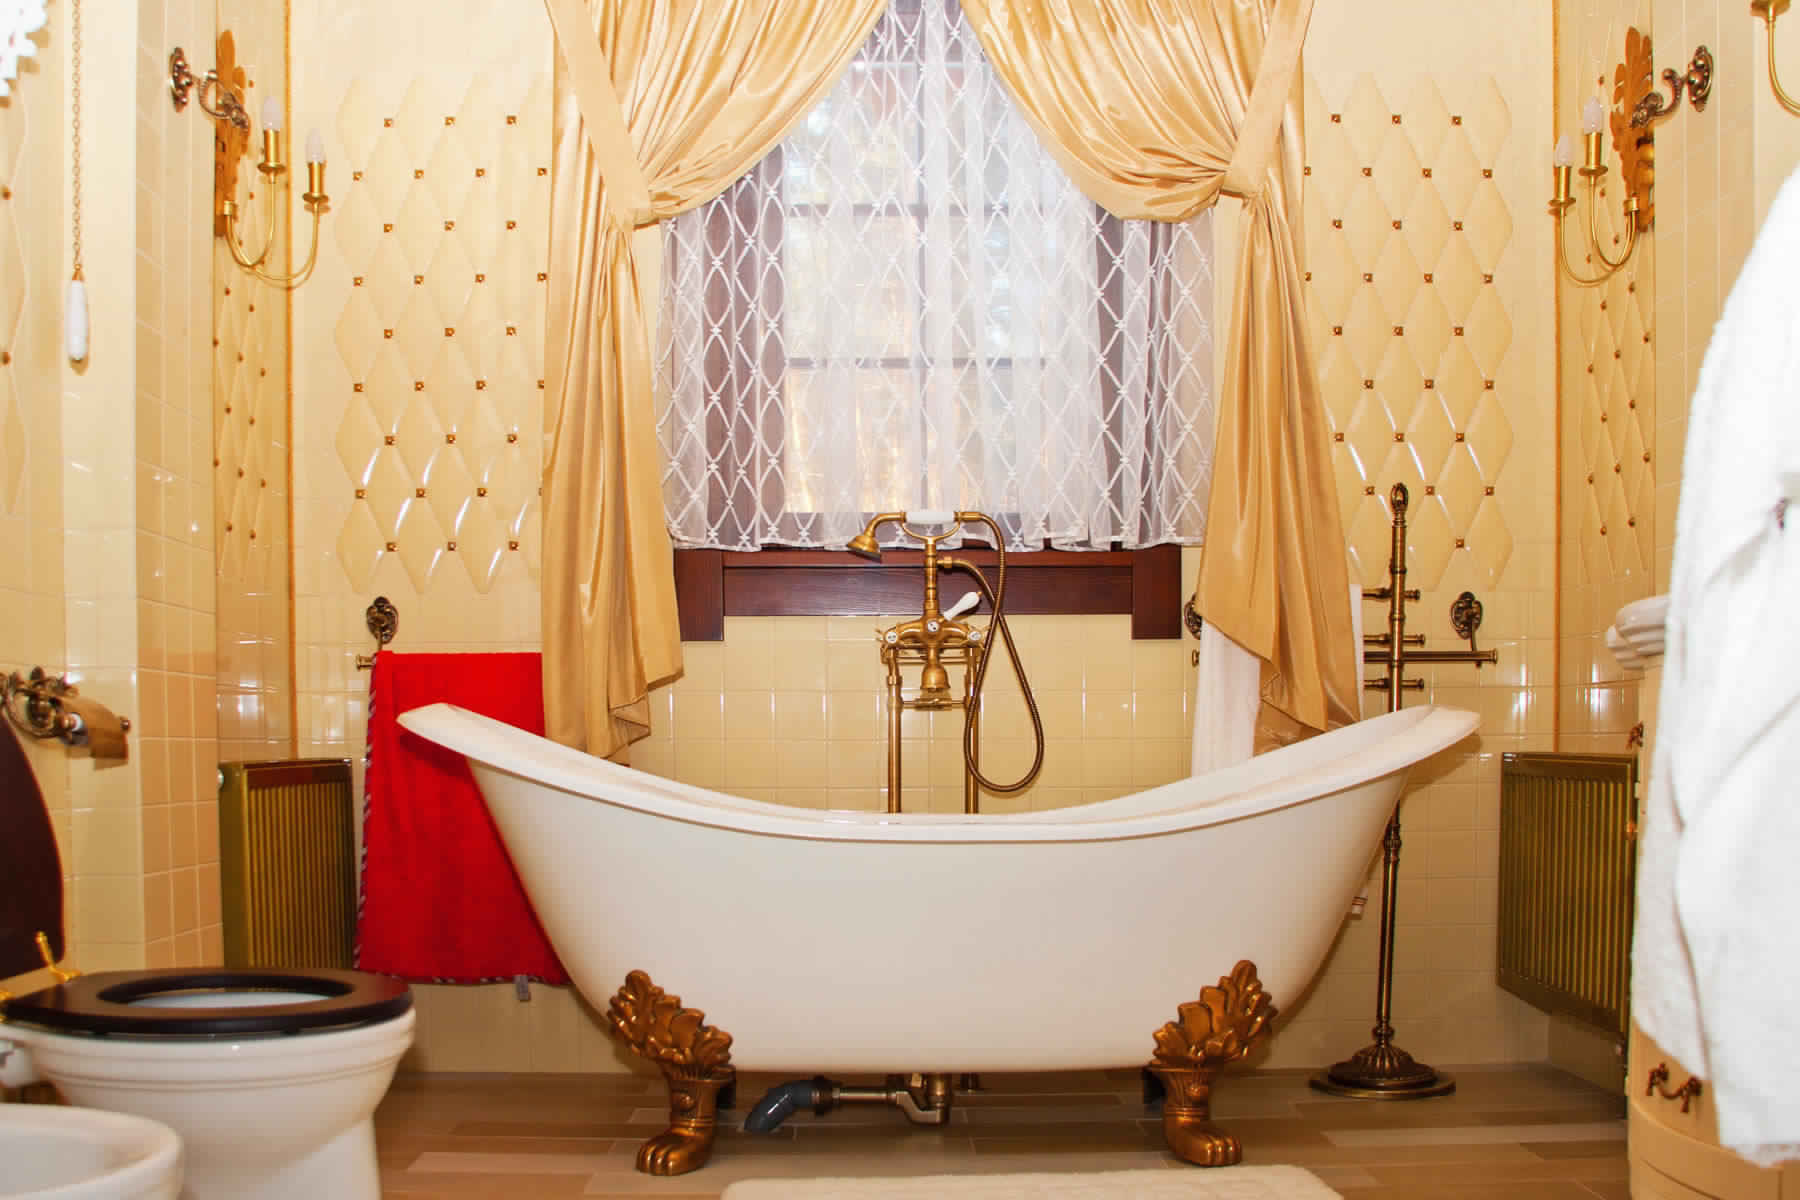 Rustic Bathroom Ideas-Short Golden curtains with picked and tulles in bath